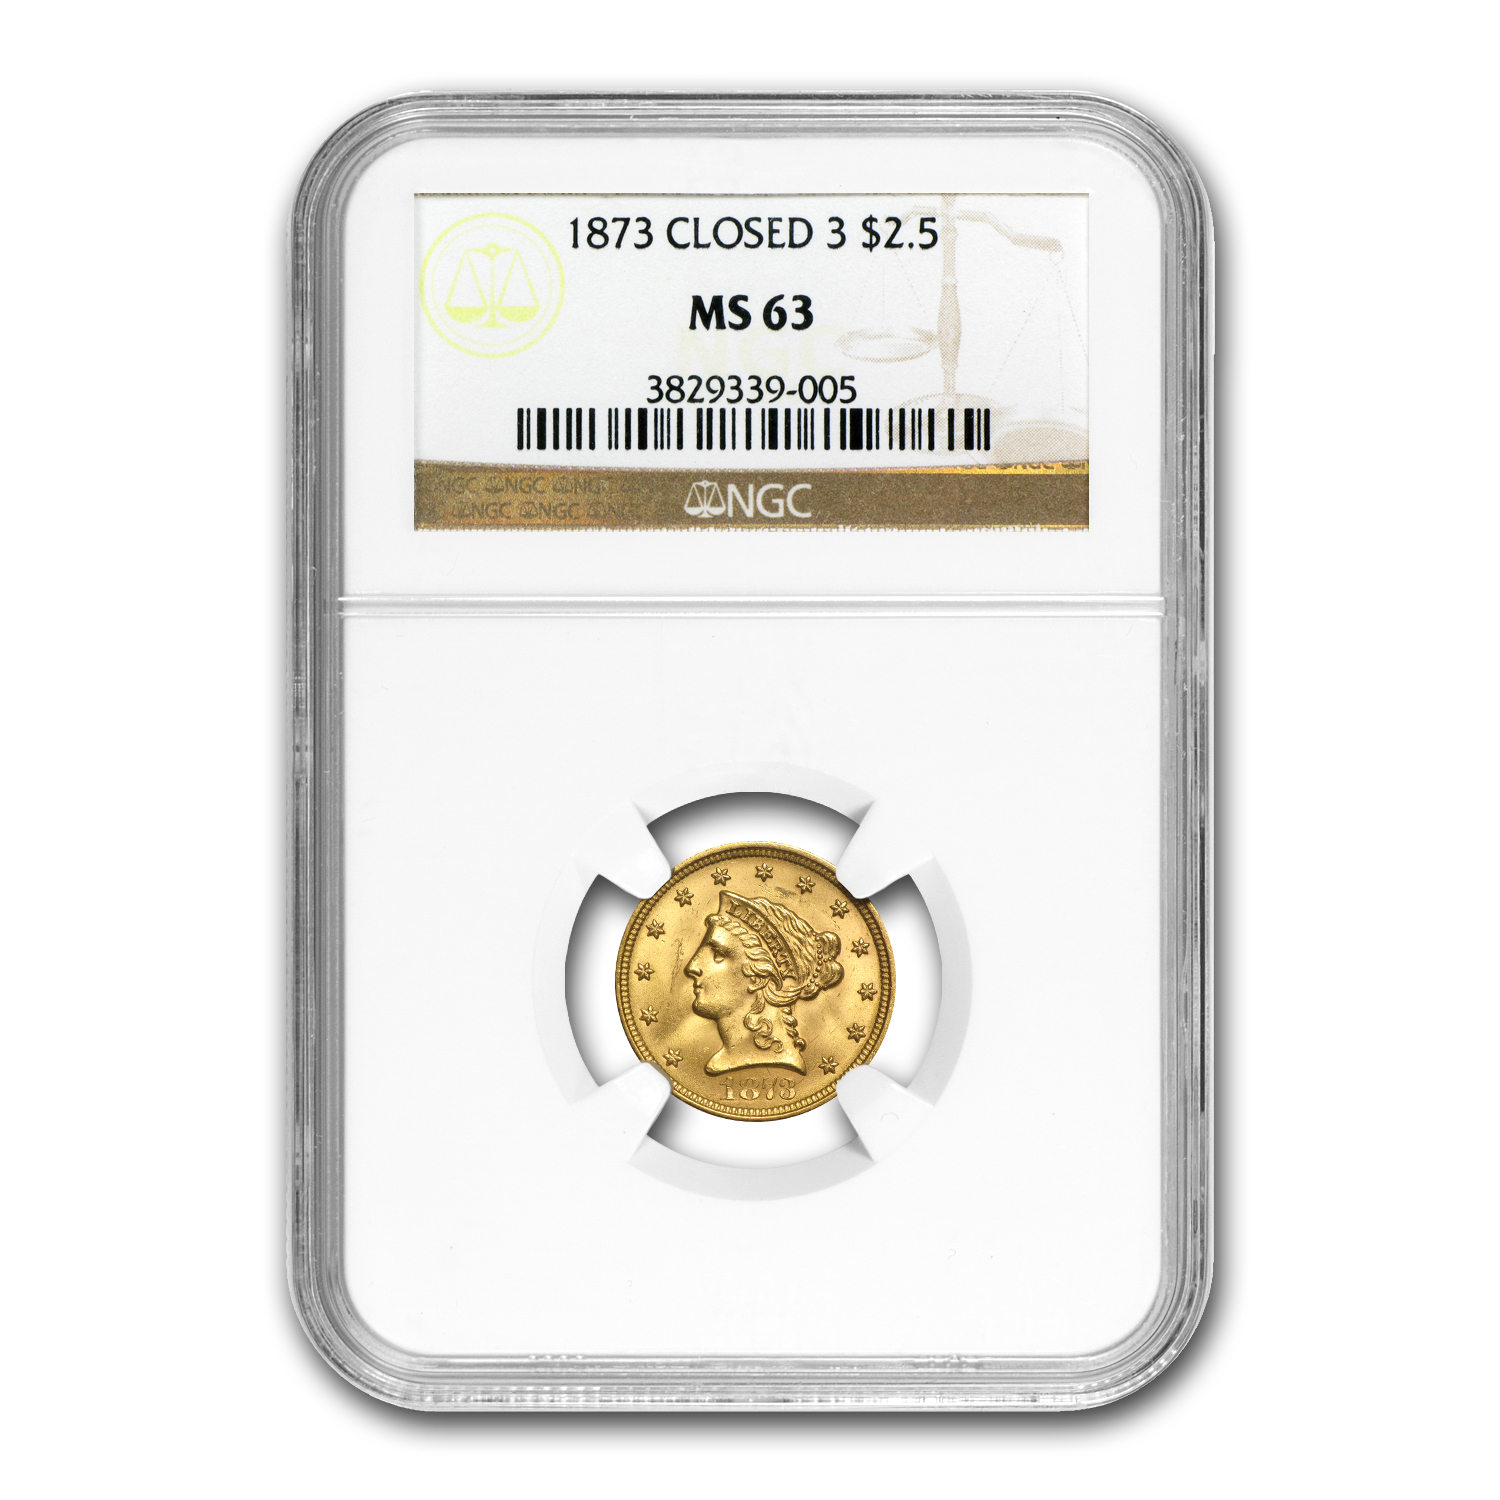 1873 $2.50 Liberty Gold Quarter Eagle - Closed 3 - MS-63 NGC